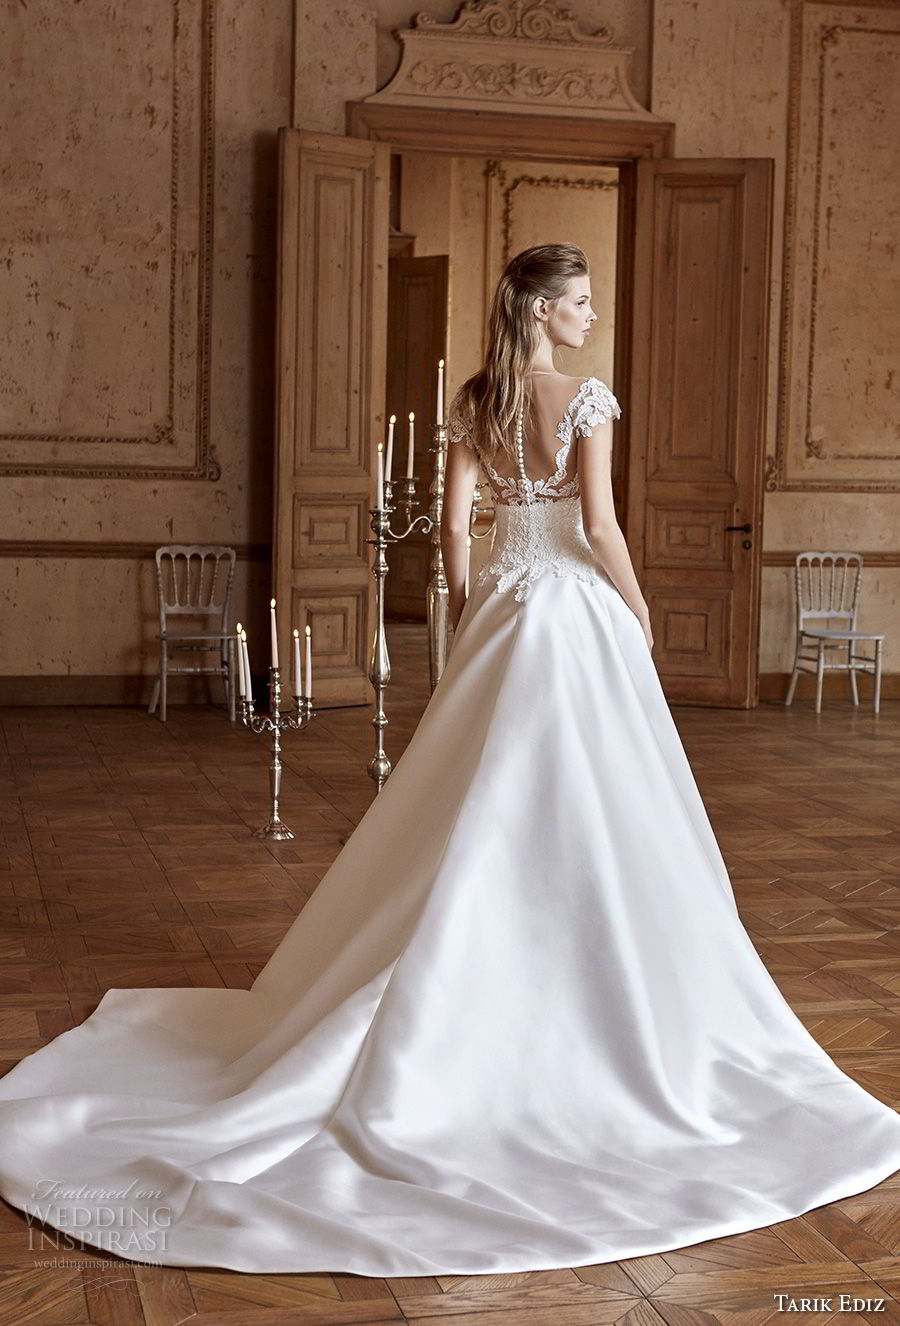 tarik ediz 2017 bridal cap sleeves illusion bateau sweetheart neckline full embellishment elegant a line wedding dress sheer button back chapel train (30) bv